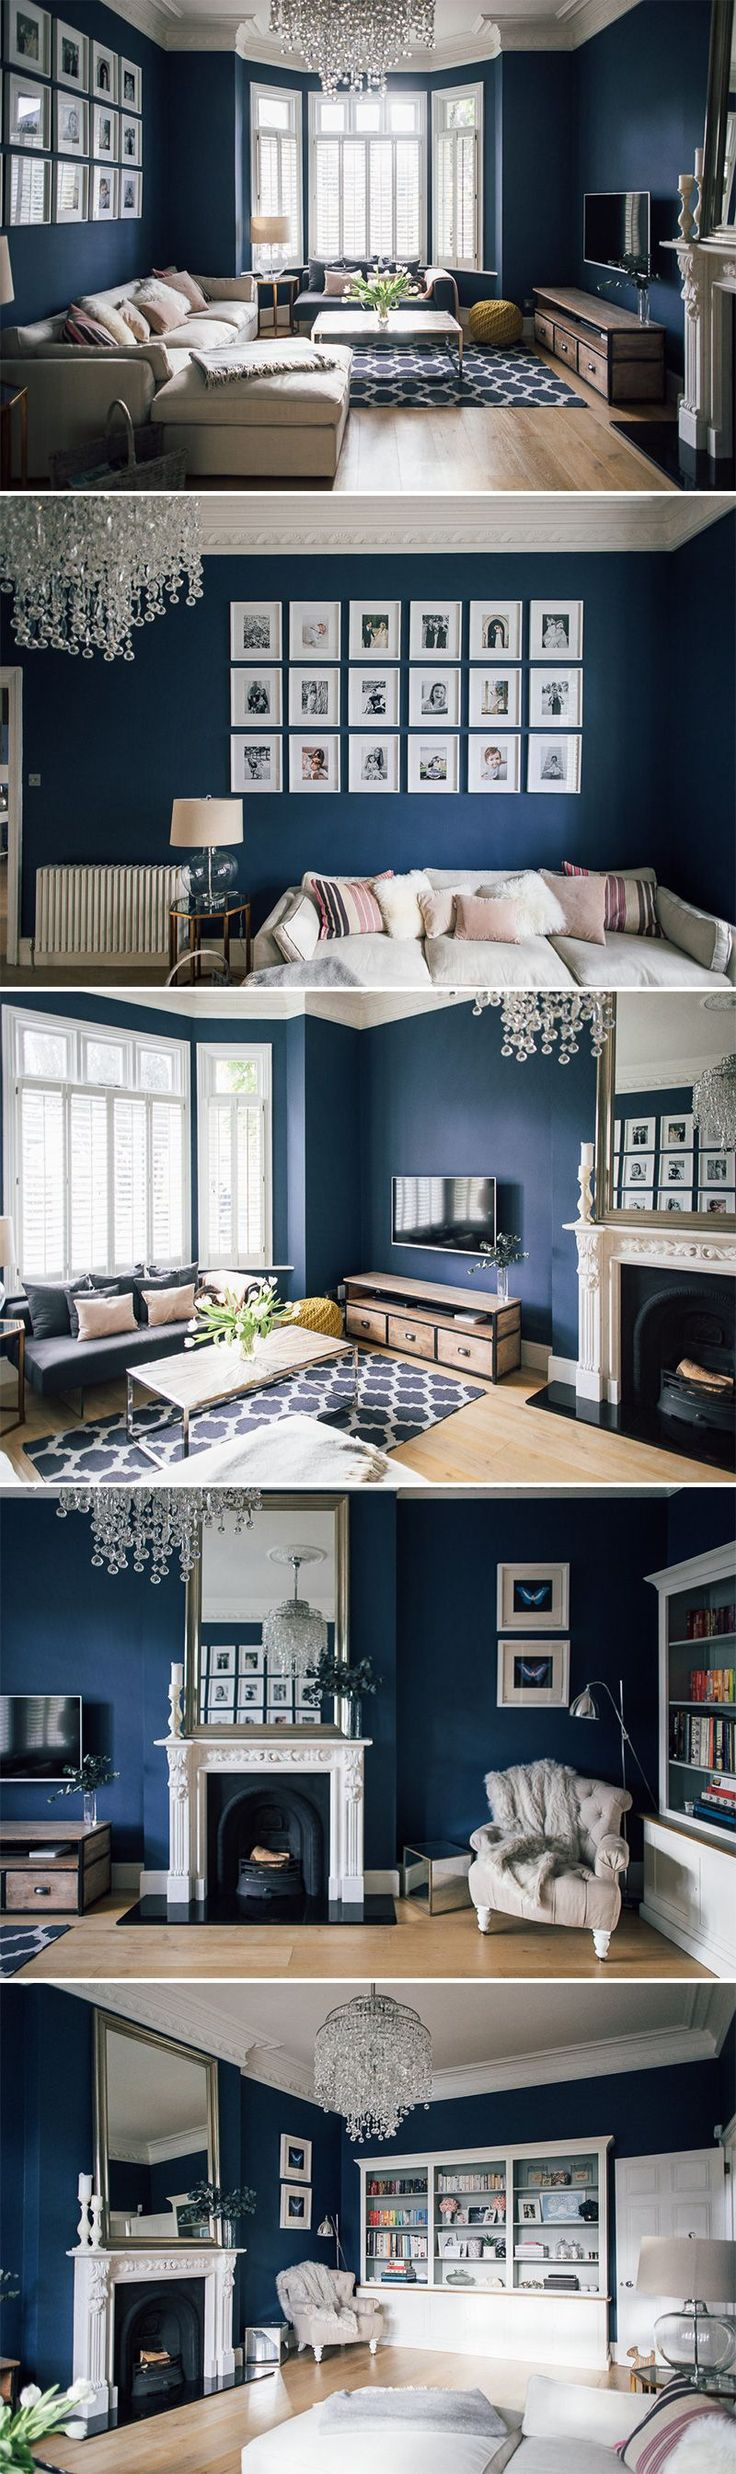 7+ Qualities of Great Interior Design [High Quality]